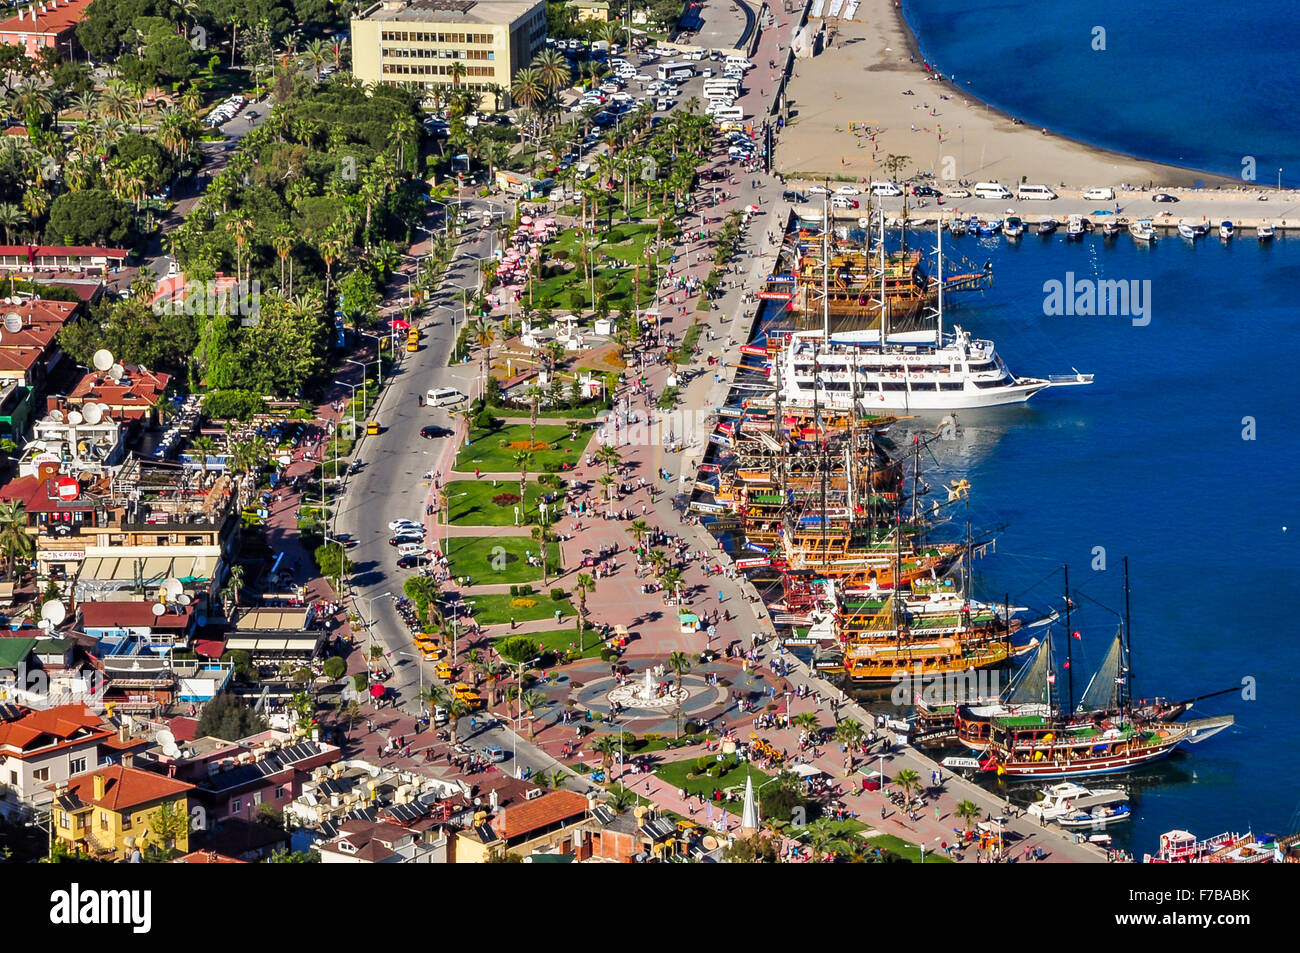 Boardwalk and harbour in Alanya, view from the castle - Stock Image